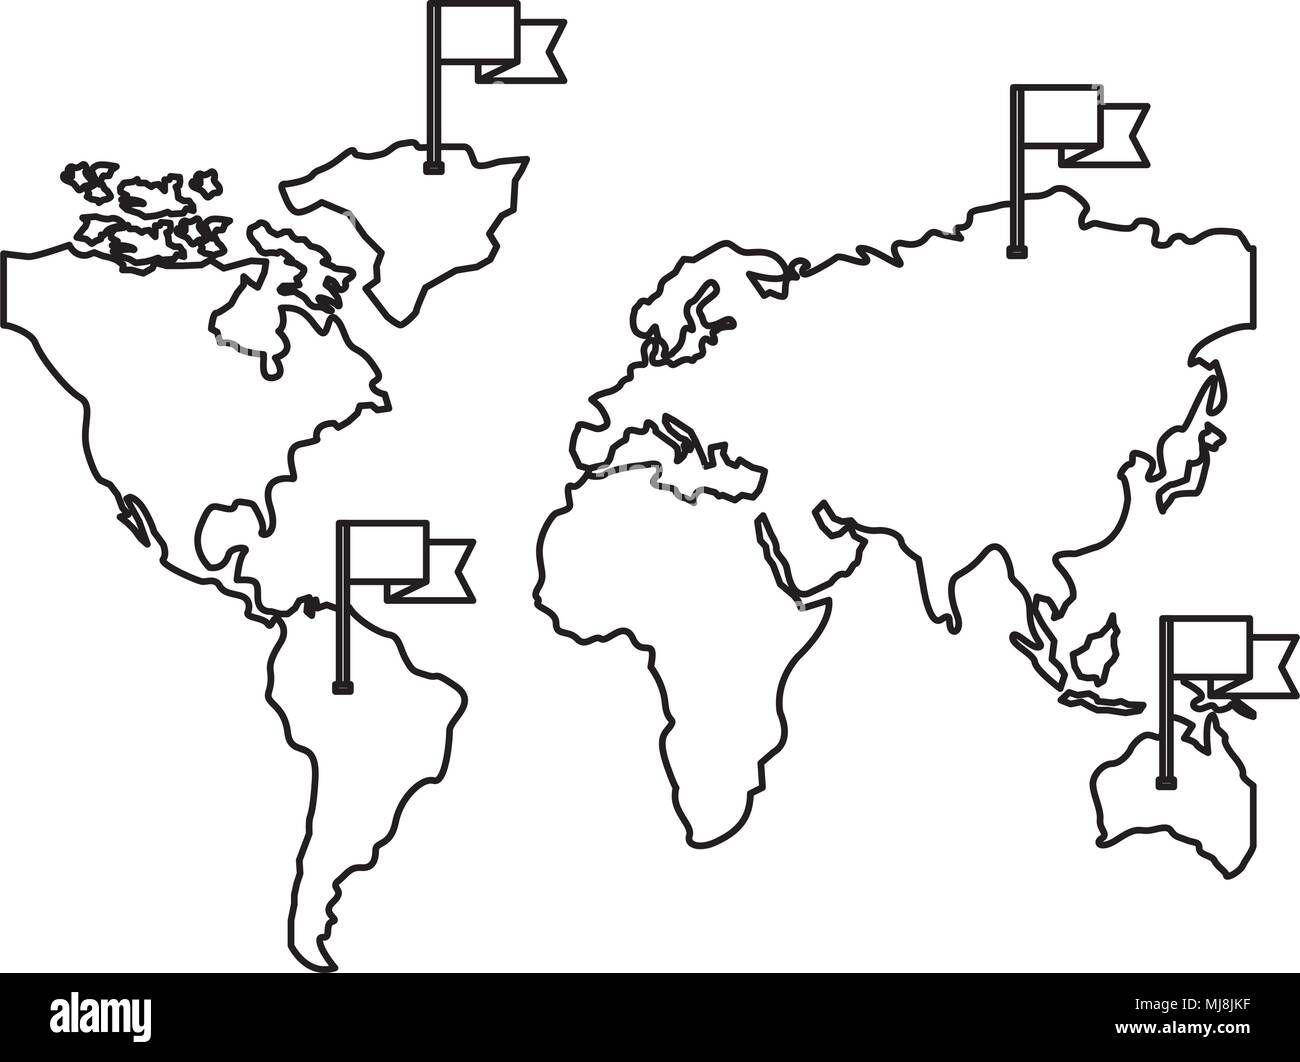 world map maps black and white stock photos images alamy St. Martin Island Caribbean world maps with flags in sticks vector illustration design stock image